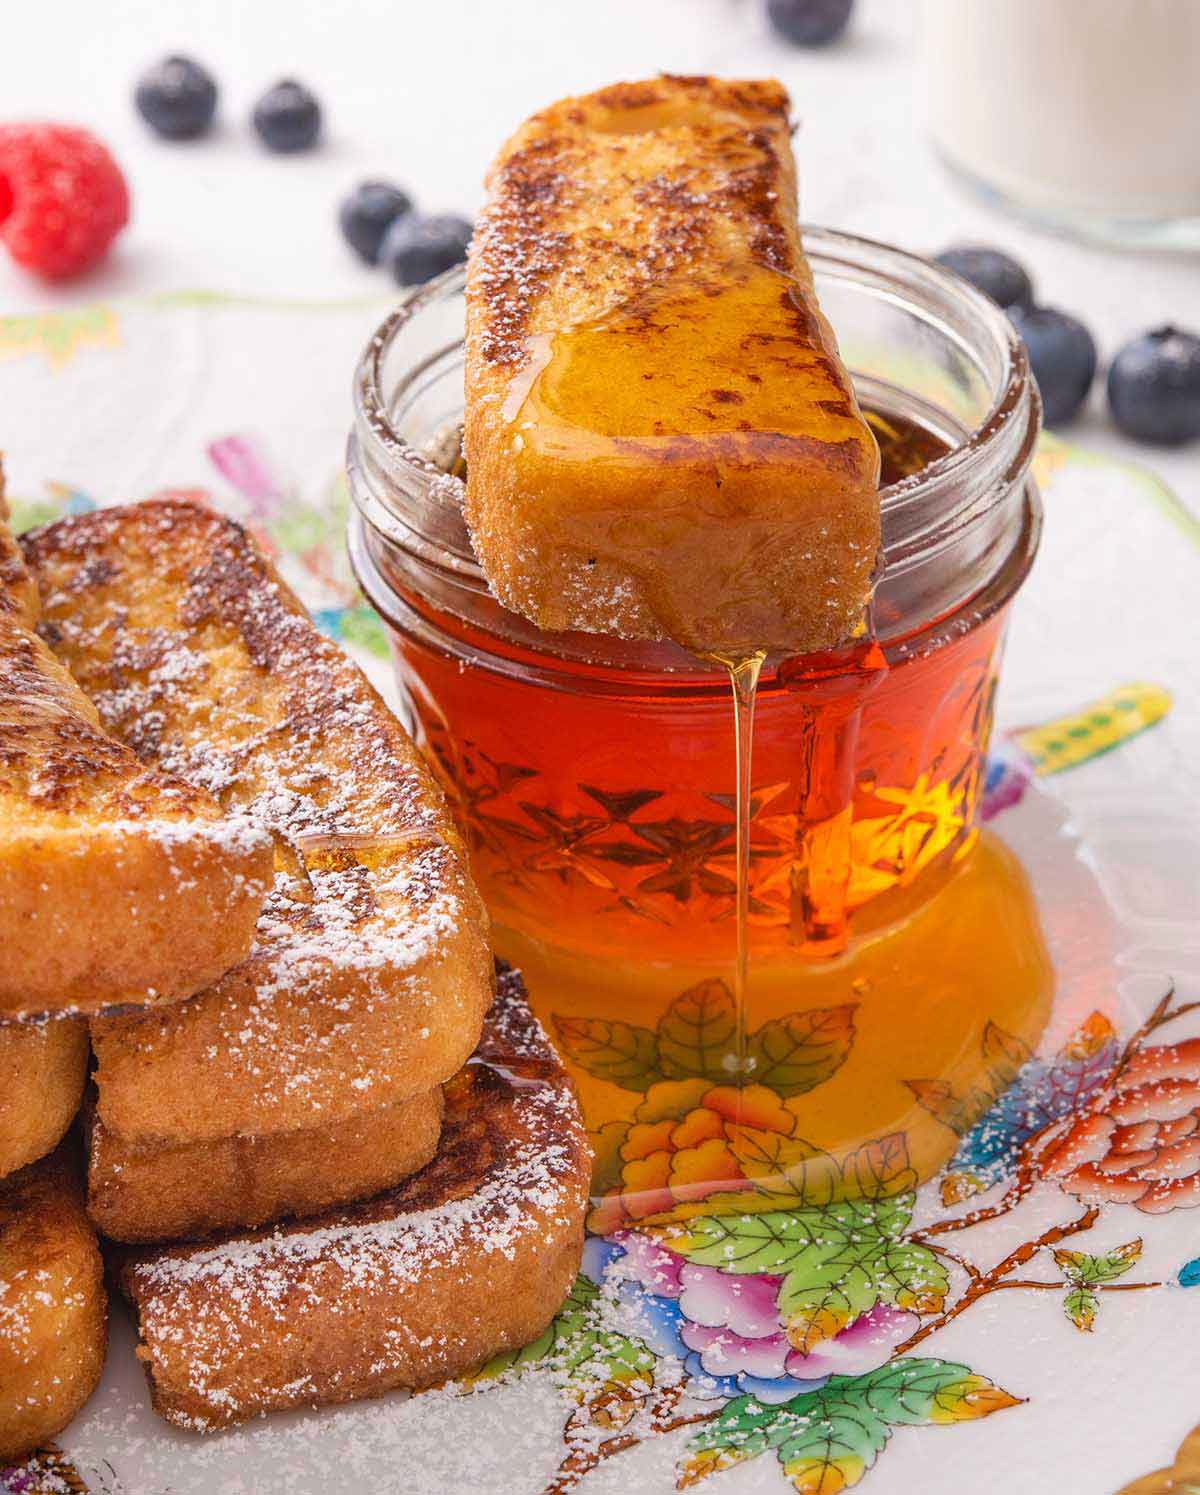 A plate with a French toast stick on top of a small mason jar of maple syrup with some dripping off the stick.